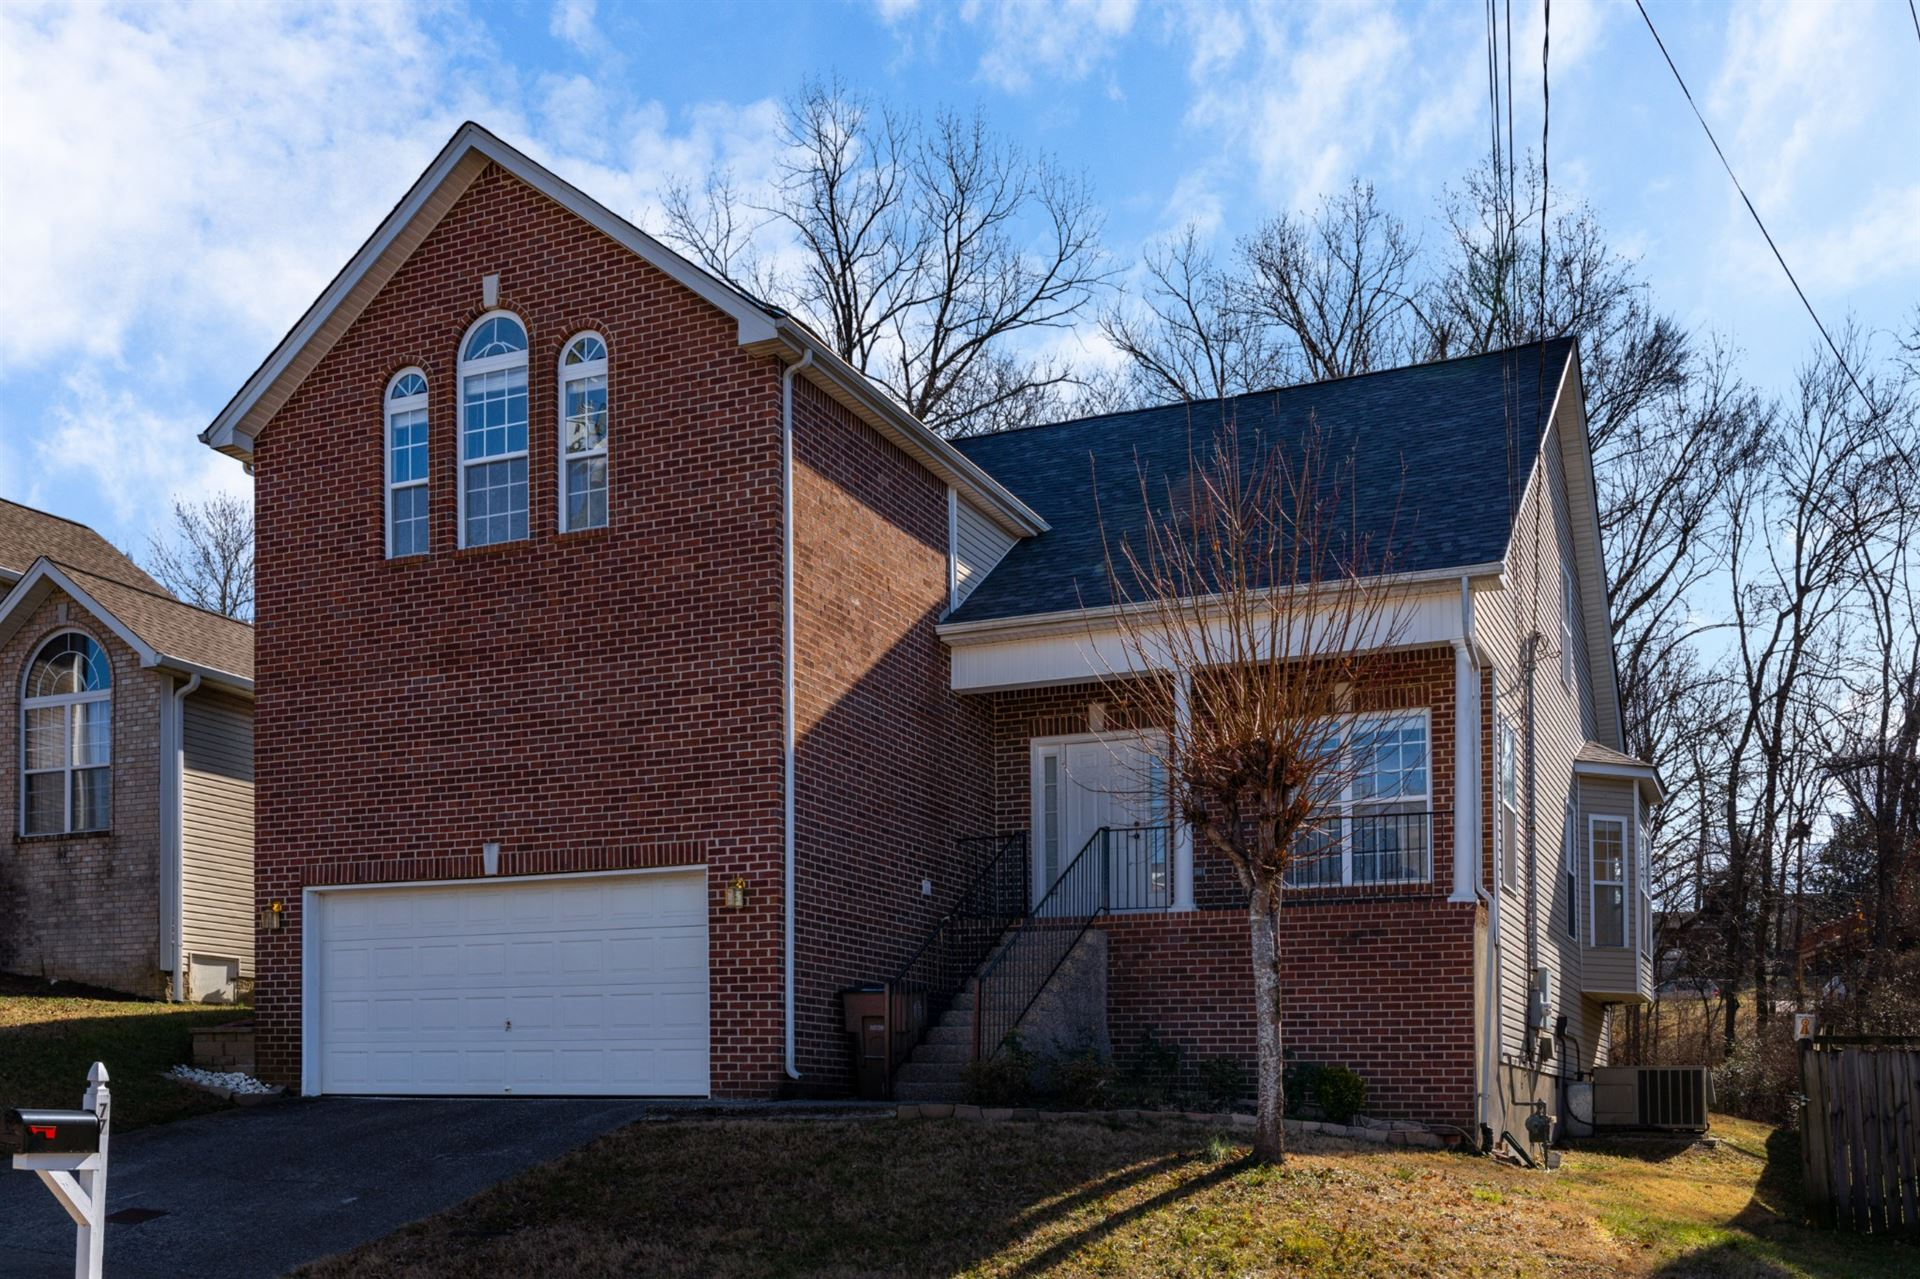 Photo of 77 KENDALL PARK DR, Nashville, TN 37217 (MLS # 2222323)